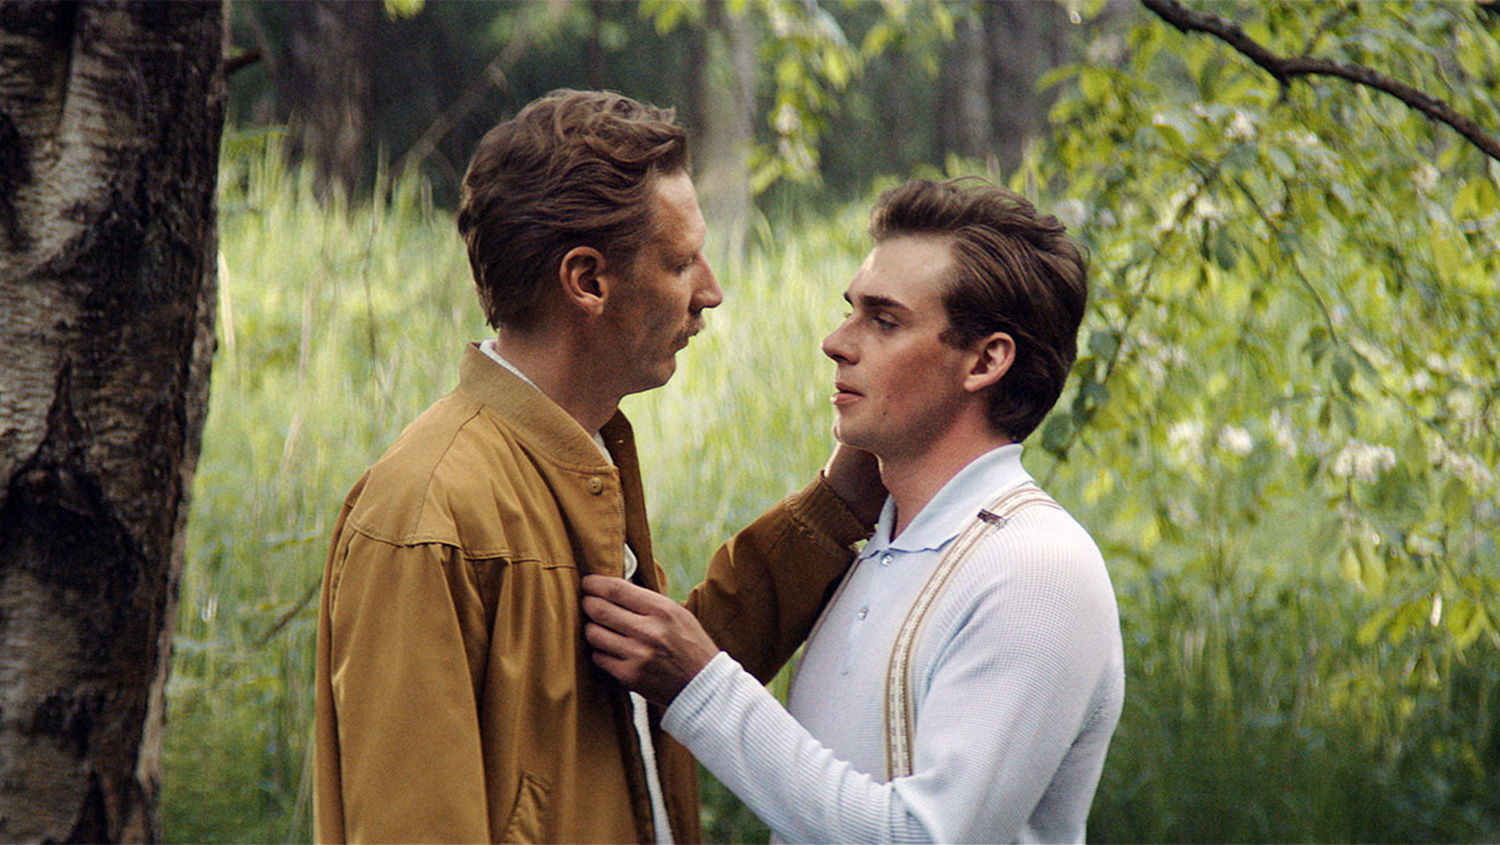 2017 LGBT Films - Tom of Finland (gay, Finland) 1